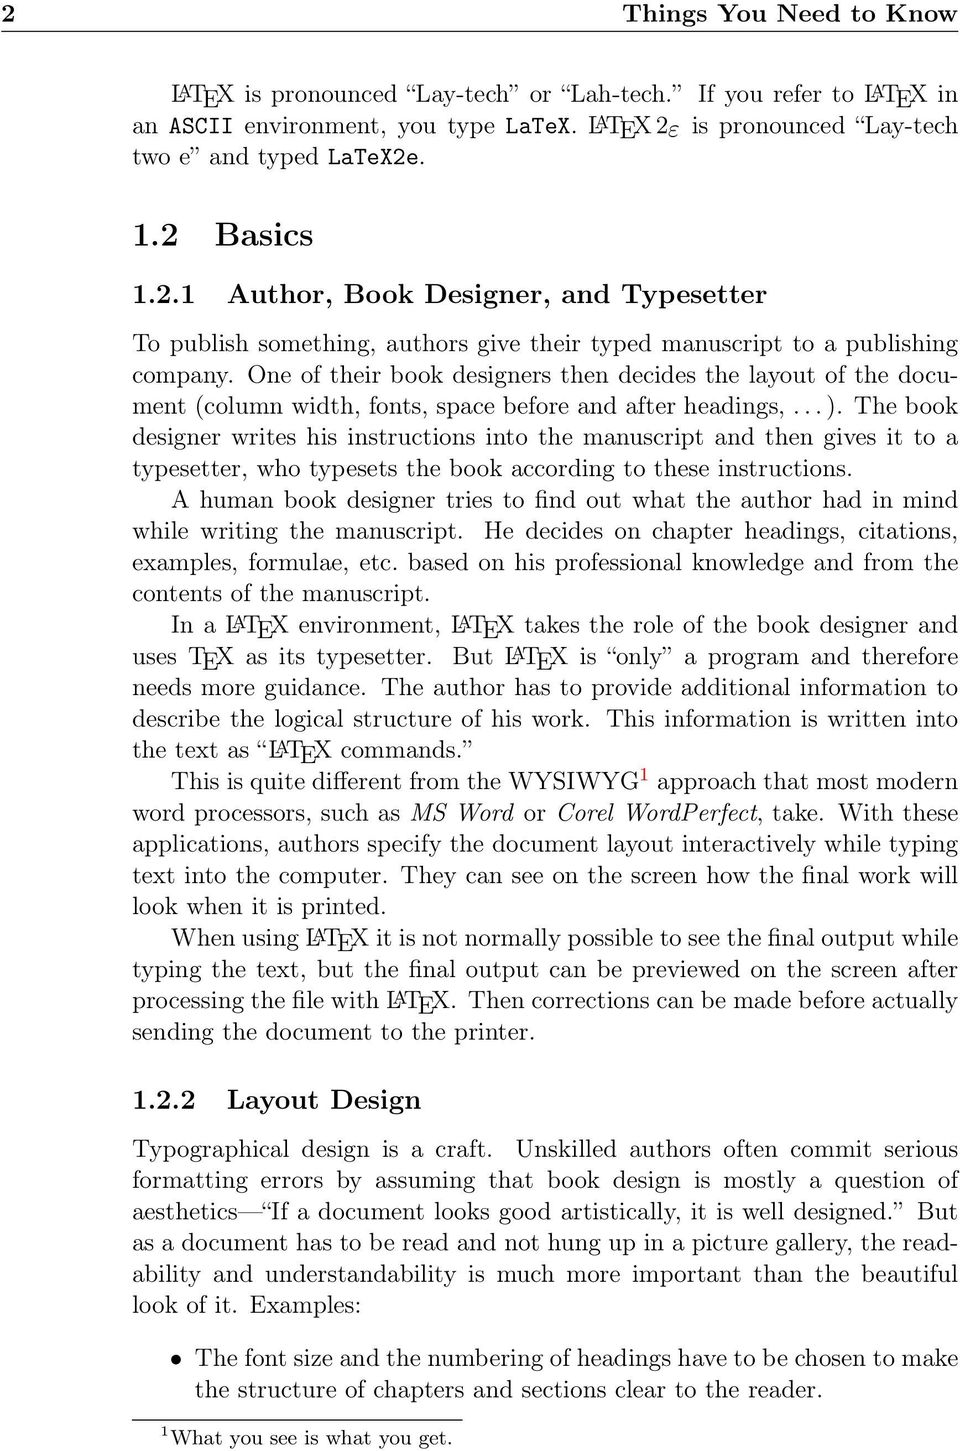 One of their book designers then decides the layout of the document (column width, fonts, space before and after headings,... ).